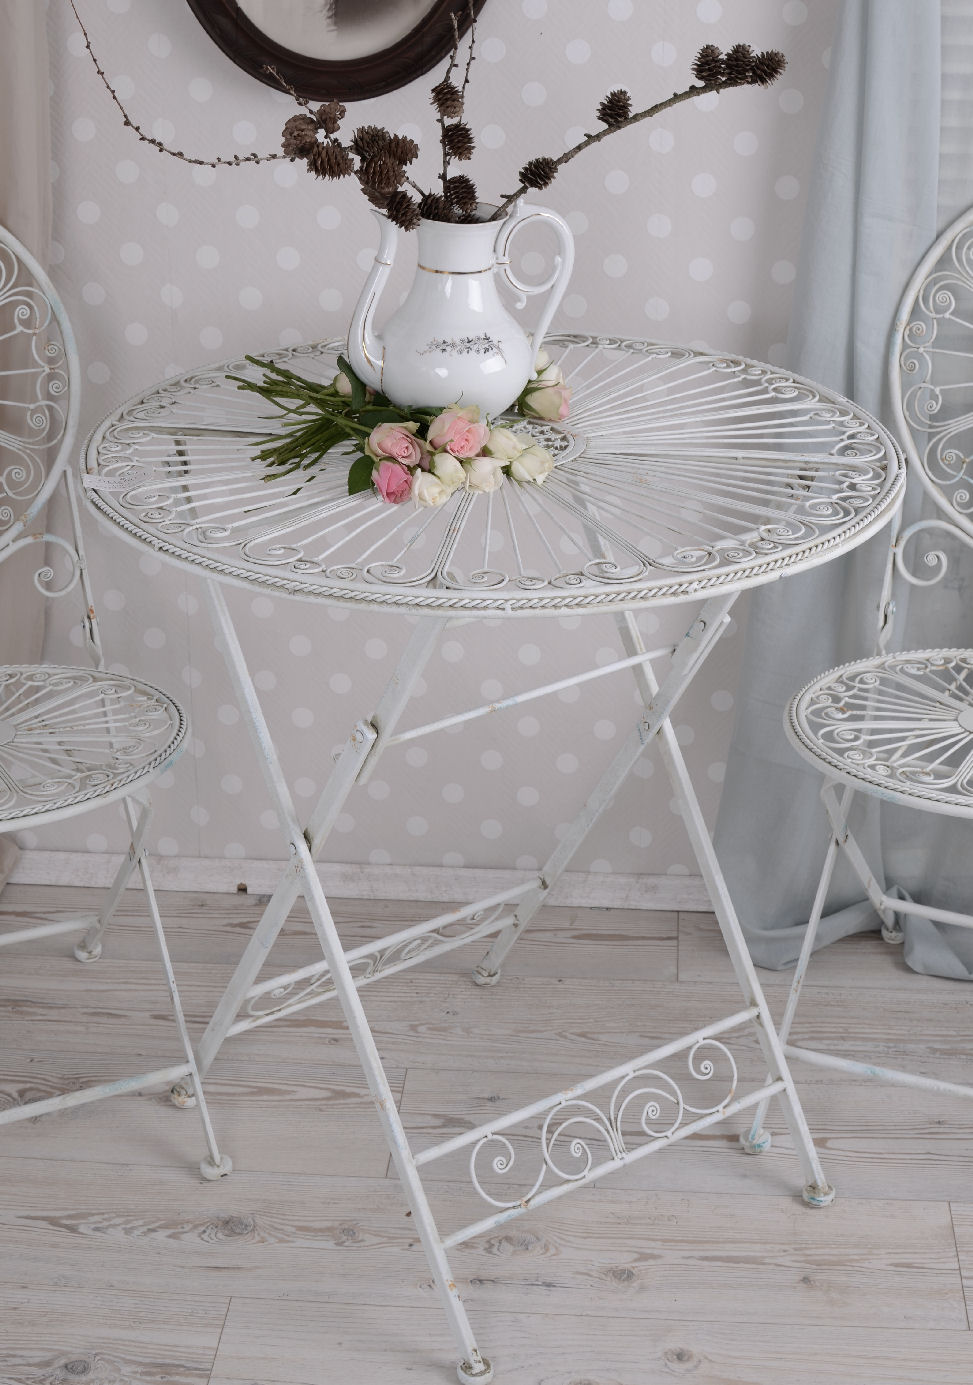 gartentisch metall shabby chic tisch gartenm bel weiss eisentisch metalltisch ebay. Black Bedroom Furniture Sets. Home Design Ideas